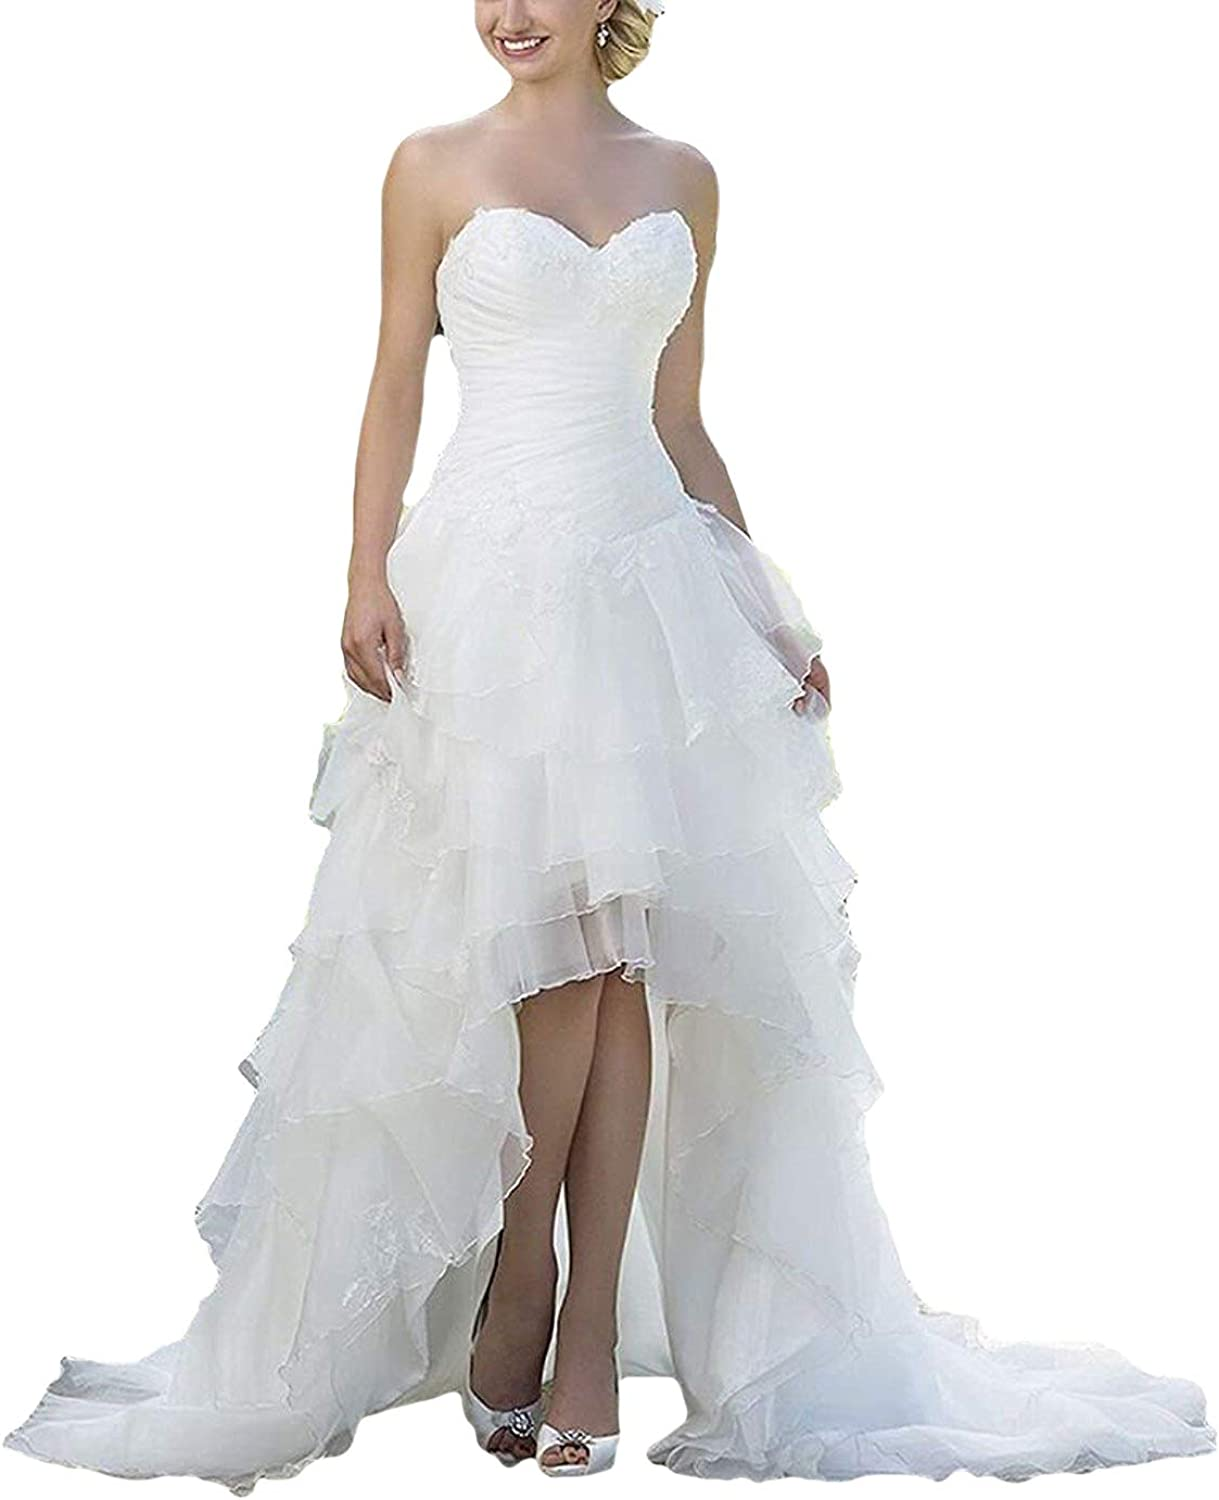 Dreagel High Low Lace Country Wedding Dresses VNeck Sleeveless Bridal Gowns